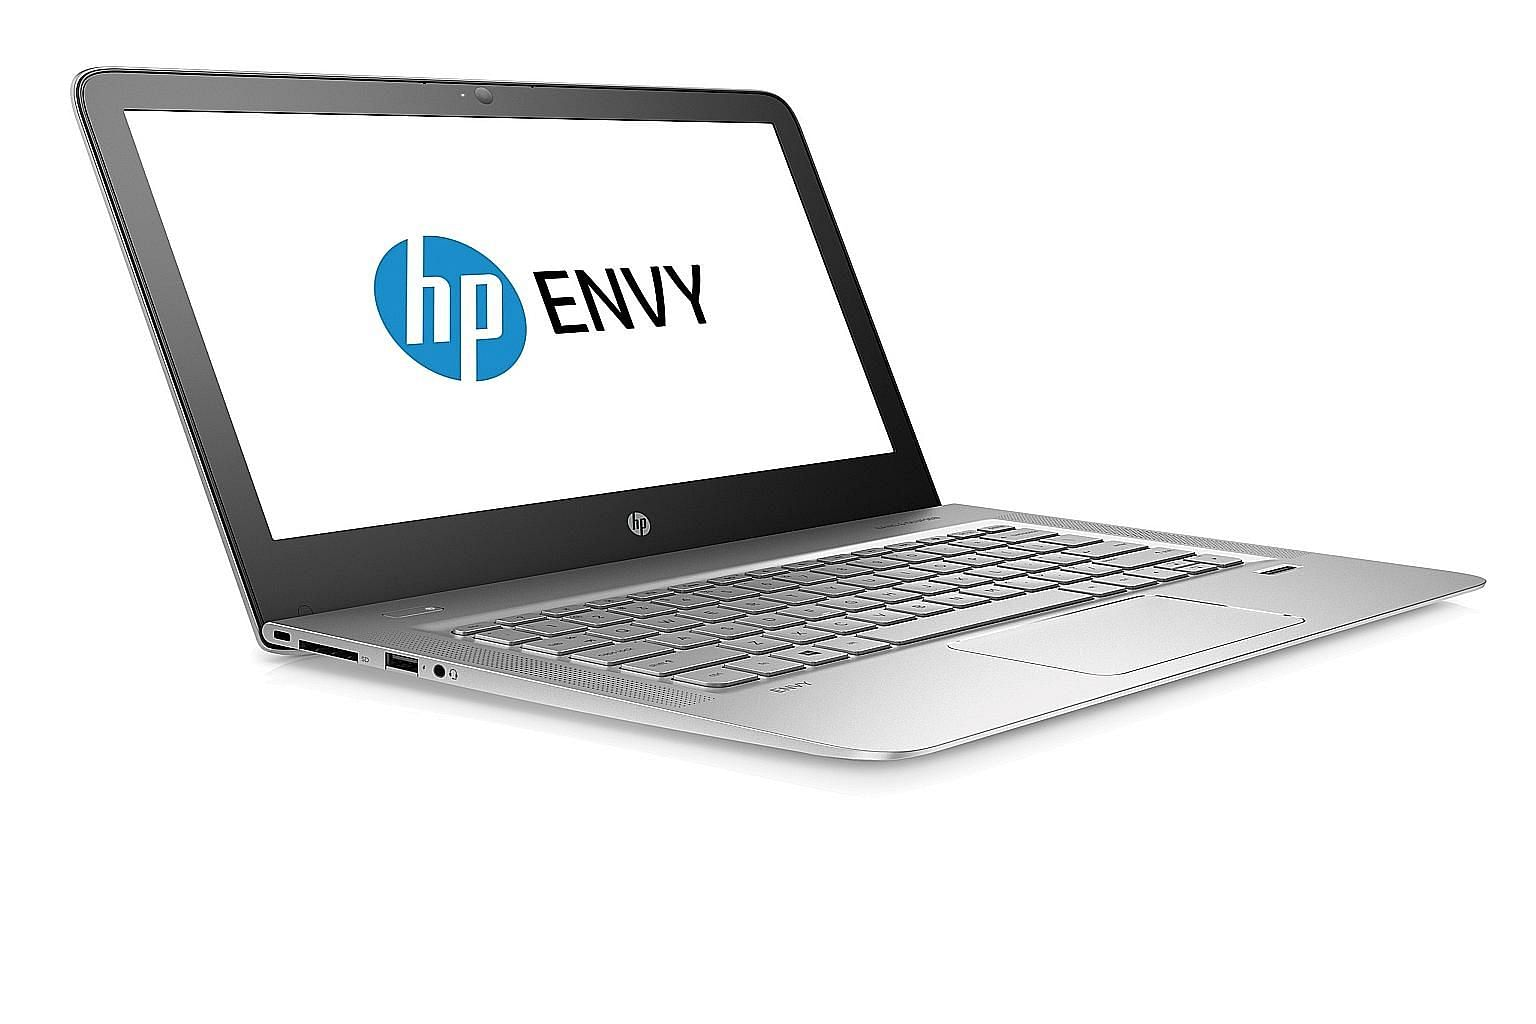 The HP Envy 13 is remarkably thin at under 13mm and weighs around 1.25kg. In comparison, Apple's 13-inch MacBook Air comes in at 17mm and 1.35kg.